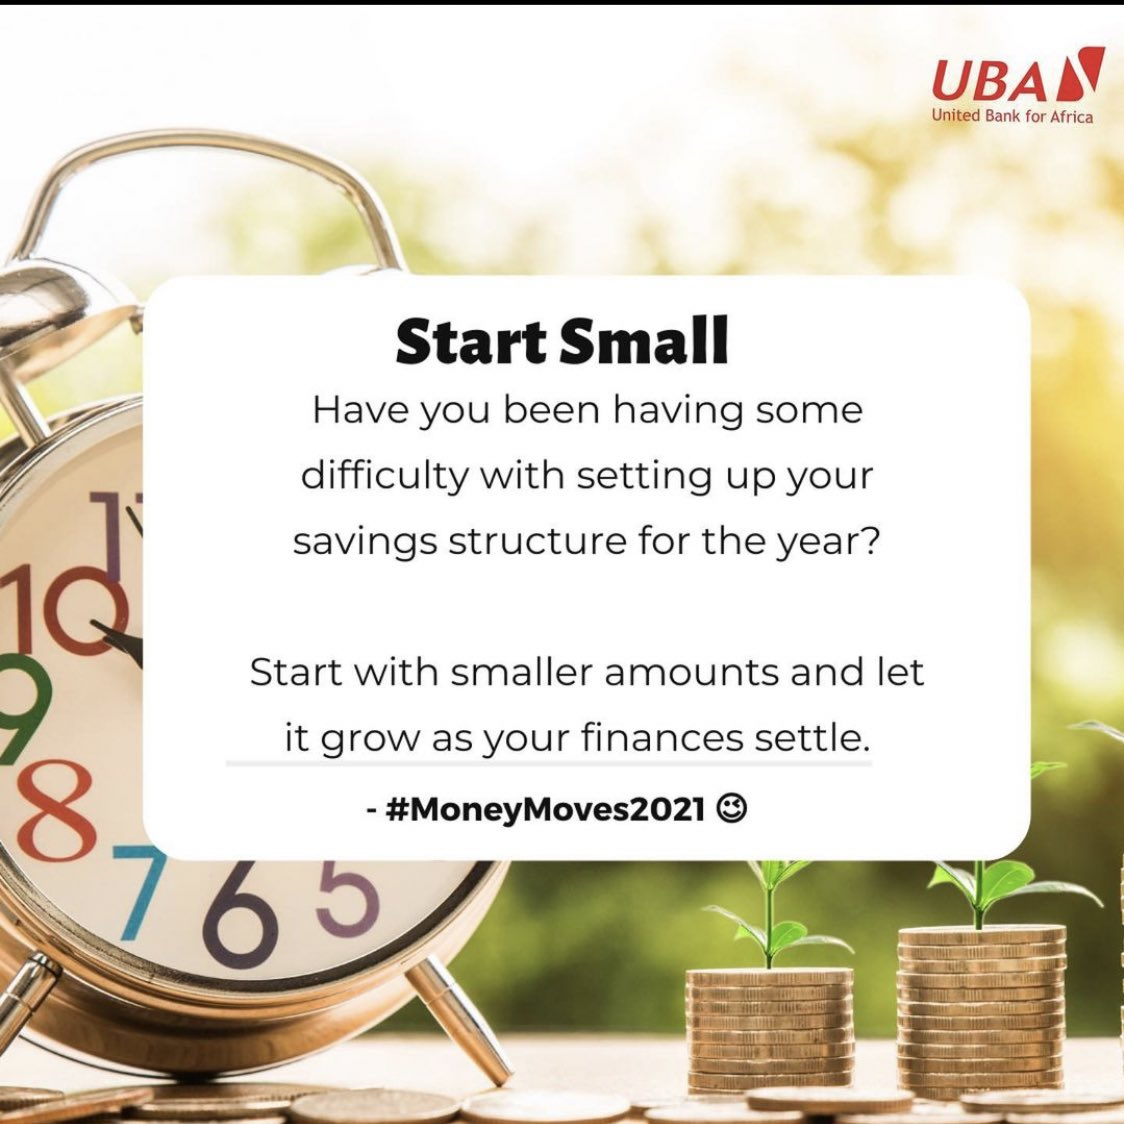 Remember the saying, tiny drops of water, make a mighty ocean. You don't have to be a heavy earner to save for the rainy day.  Just take it one step at a time, save what you can today and build it up as the year unfolds 😉 #MoneyMoves2021 #UBACares #MondayMotivation